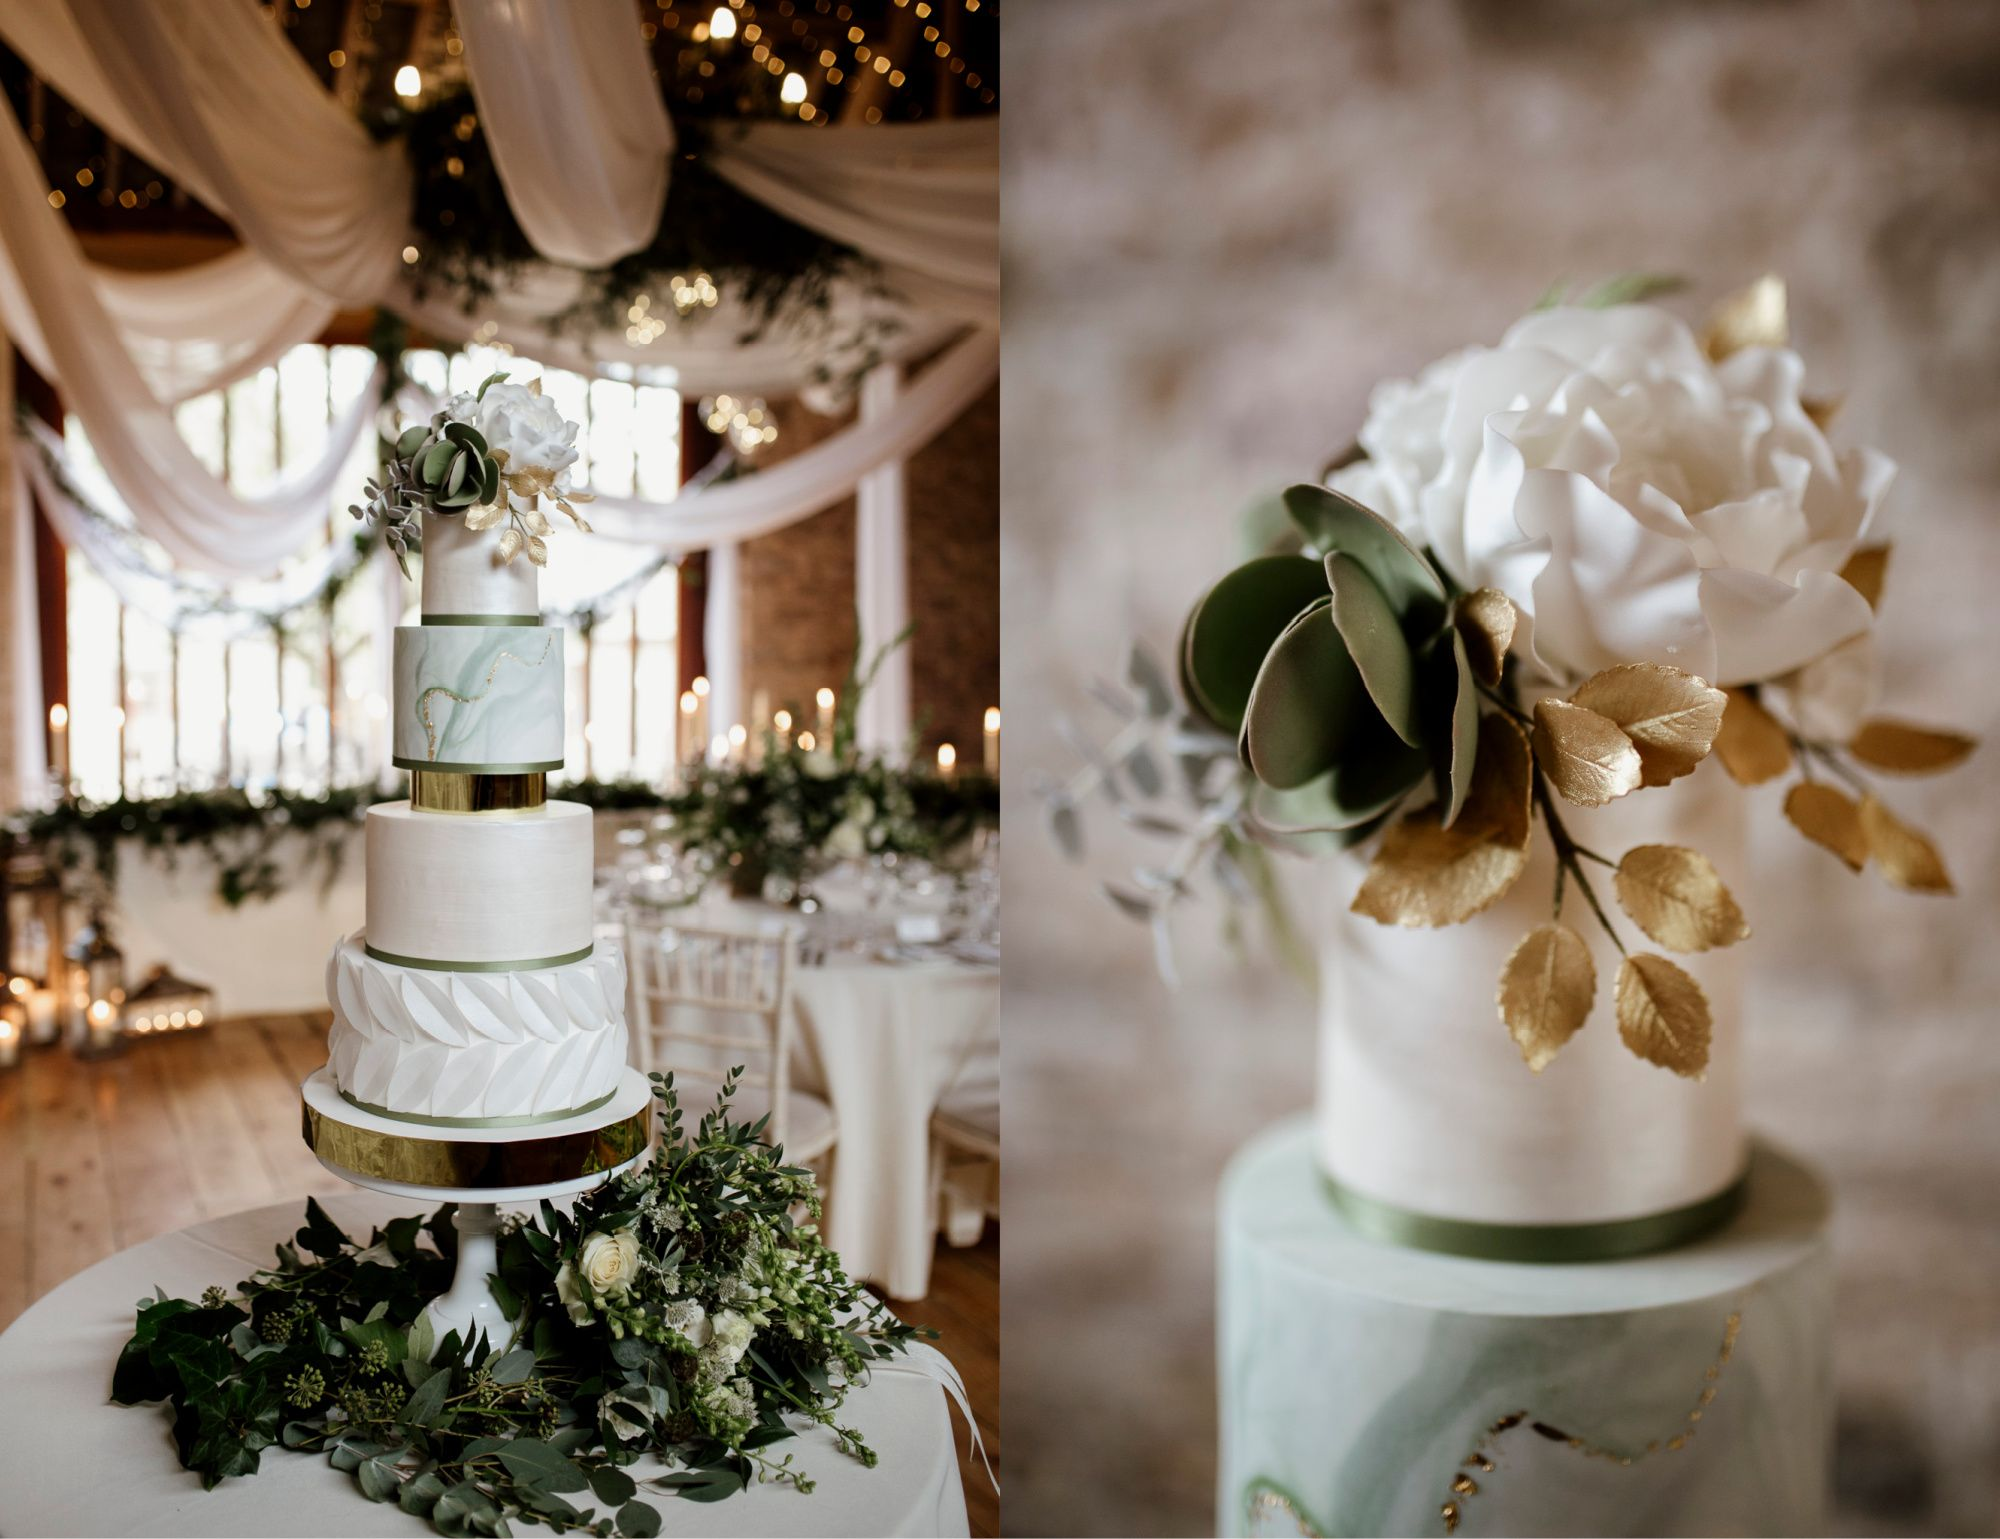 Helen Jane Cake Design - Luxury Wedding Cakes in Dorset - Love That Wedding